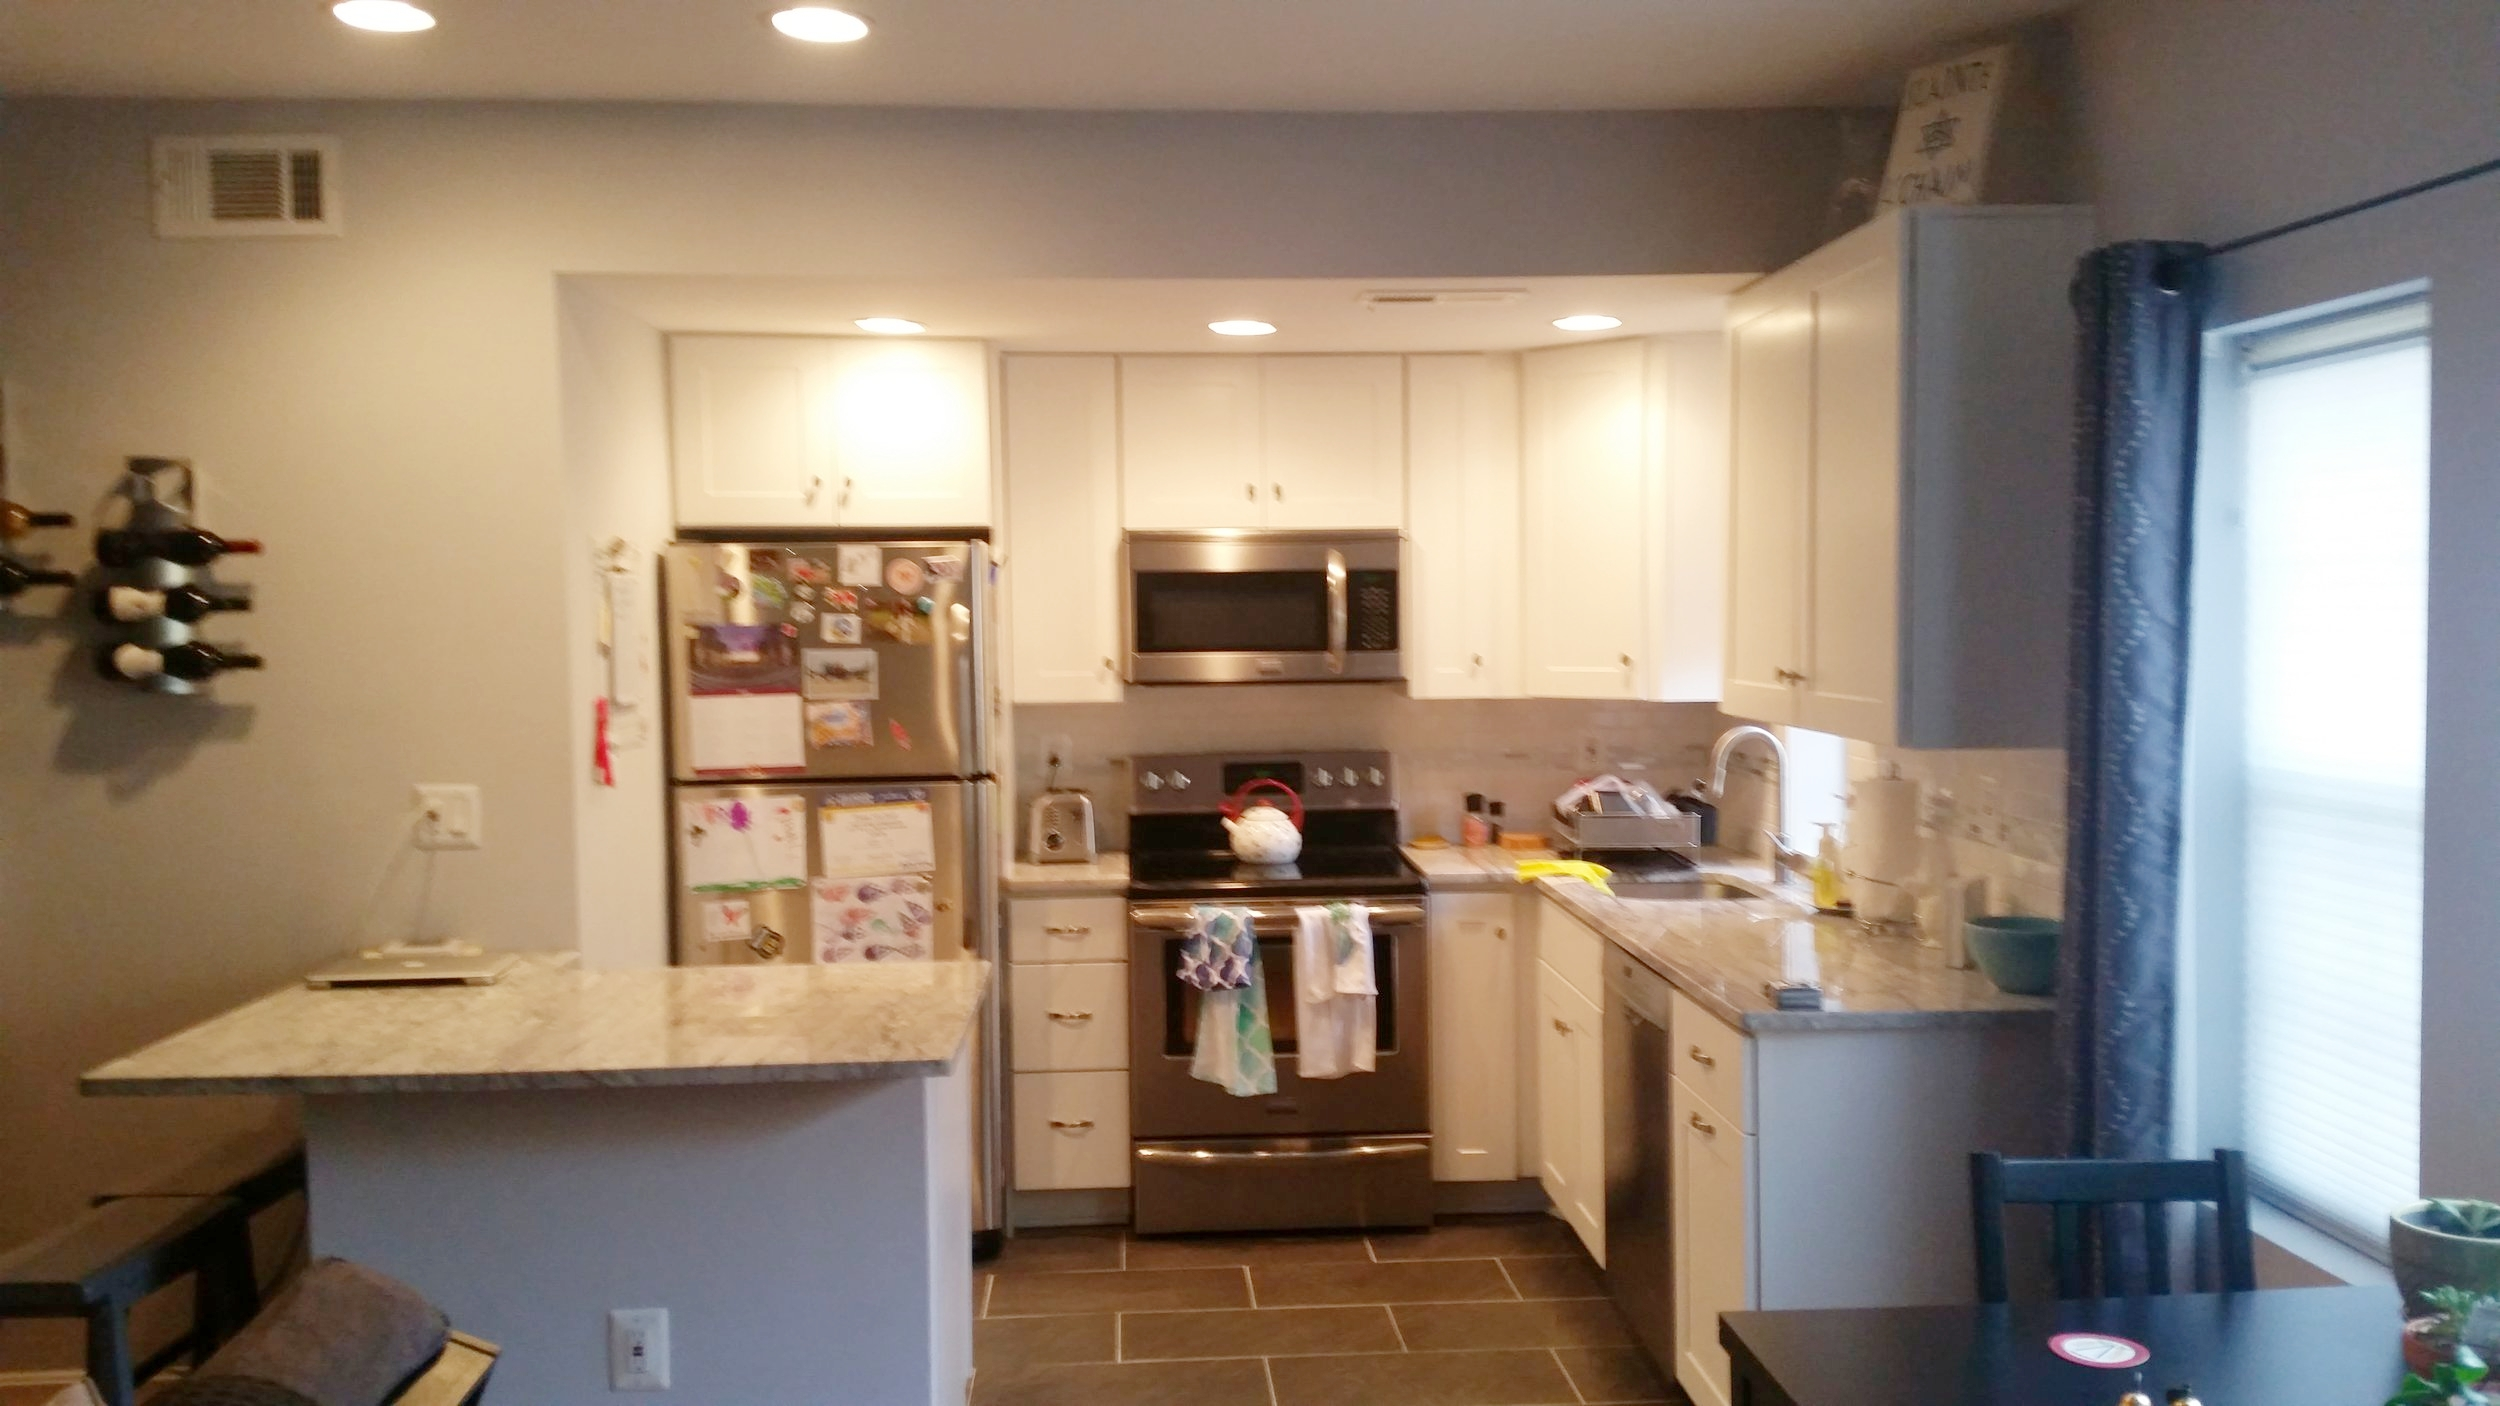 Condo Kitchen Expansion - CLARENDON VA